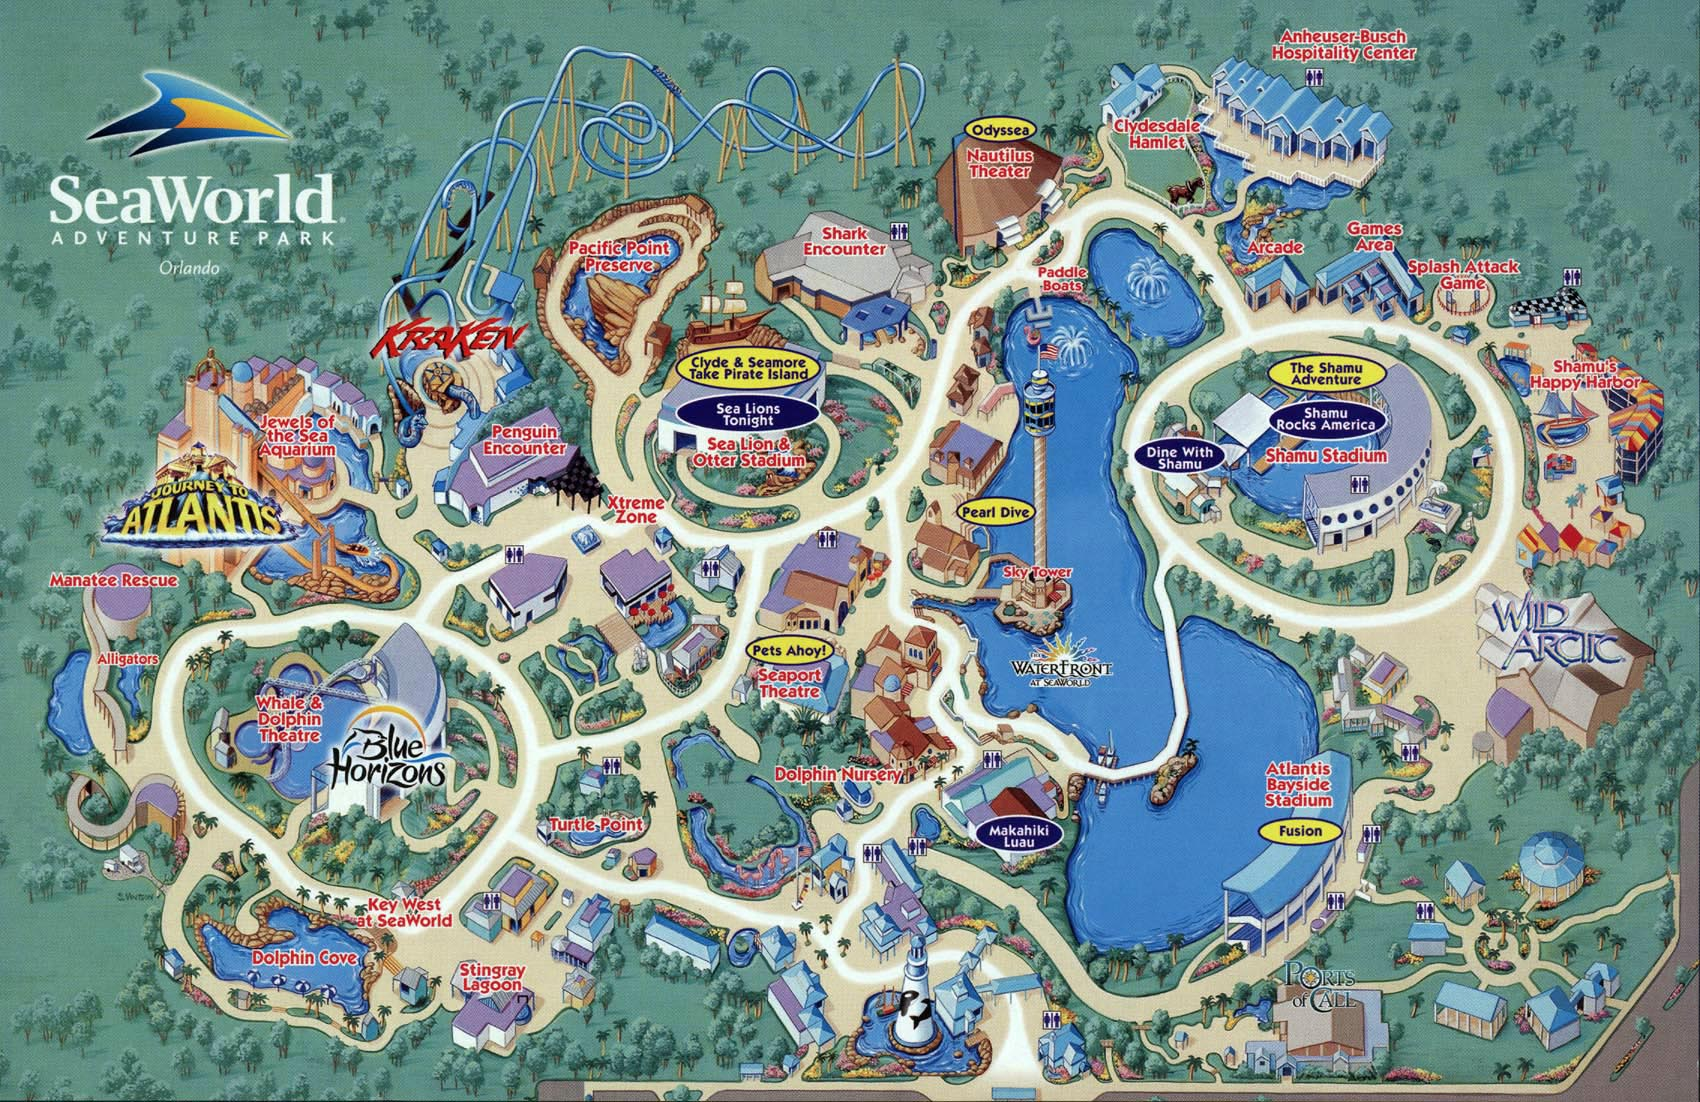 . seaworld map orlando   sea harbor dr orlando fl • mappery